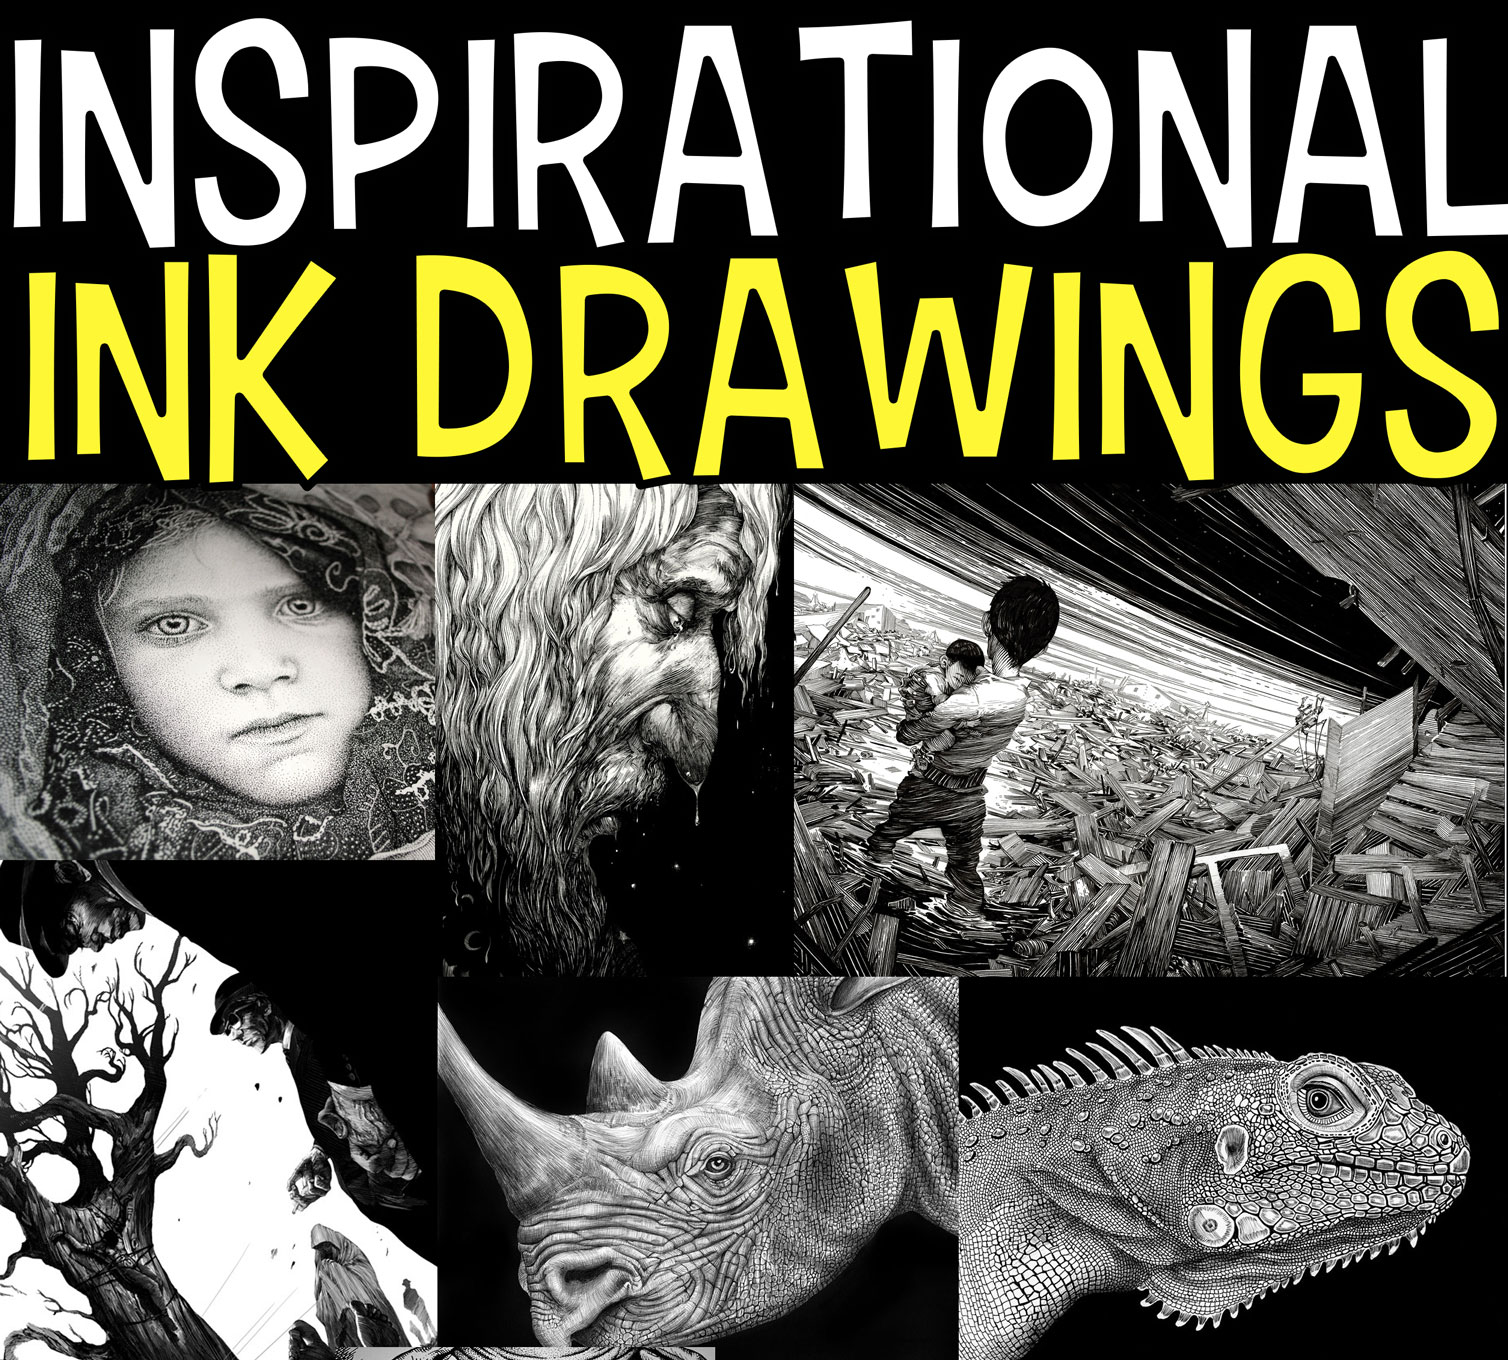 50+ Black and White Pen and Ink Drawings and Illustrations Inspirational Examples That Will Inspire The Artist in You